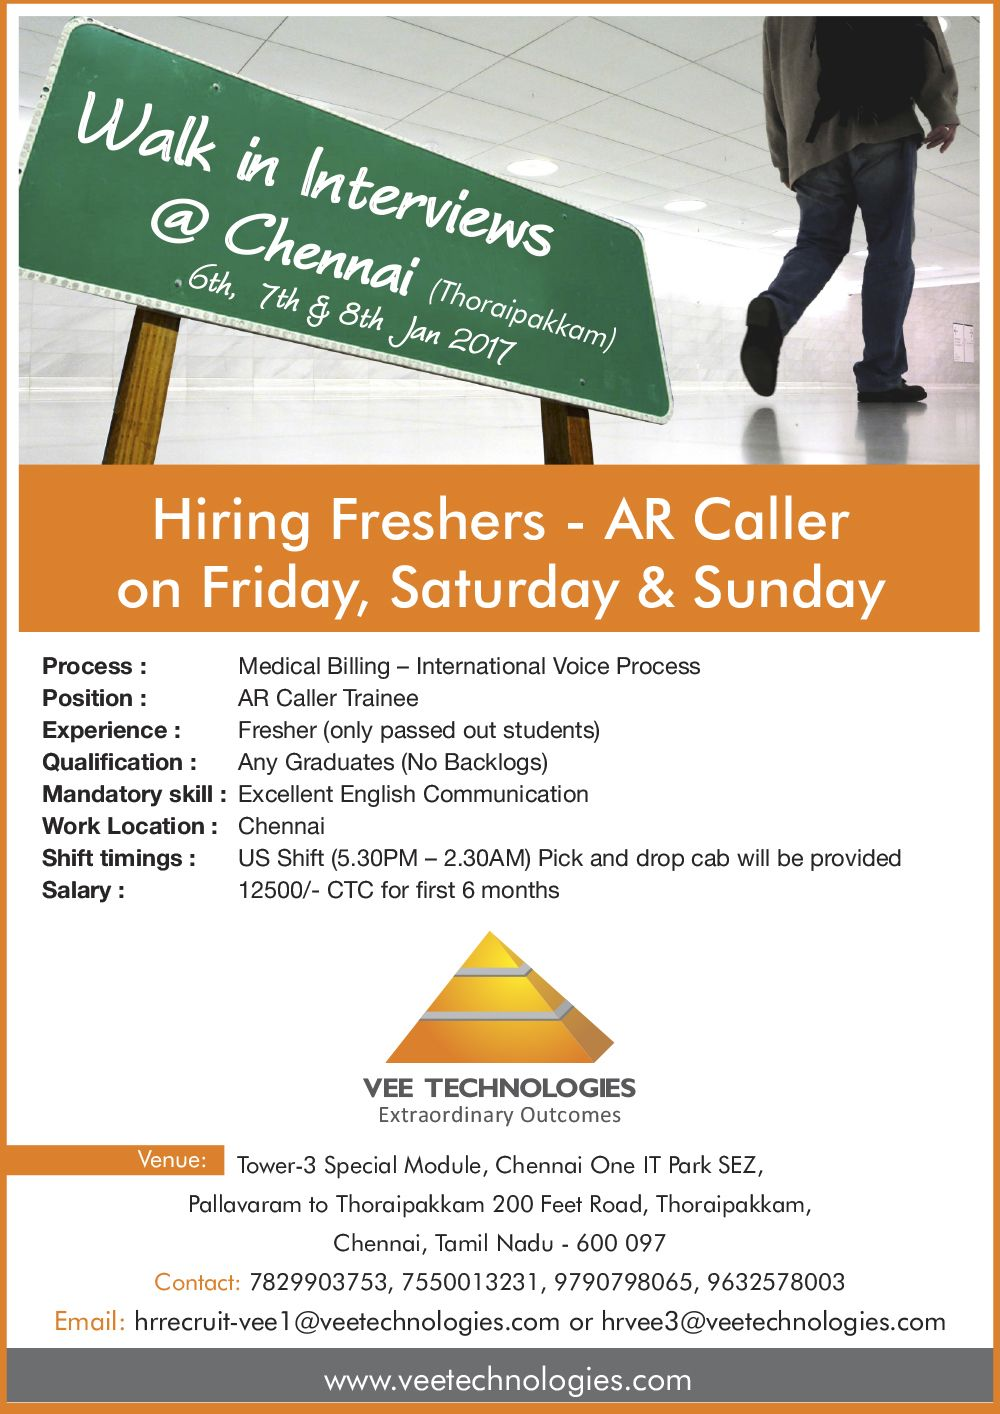 WalkIn Interview for AR Callers at Vee Technologies